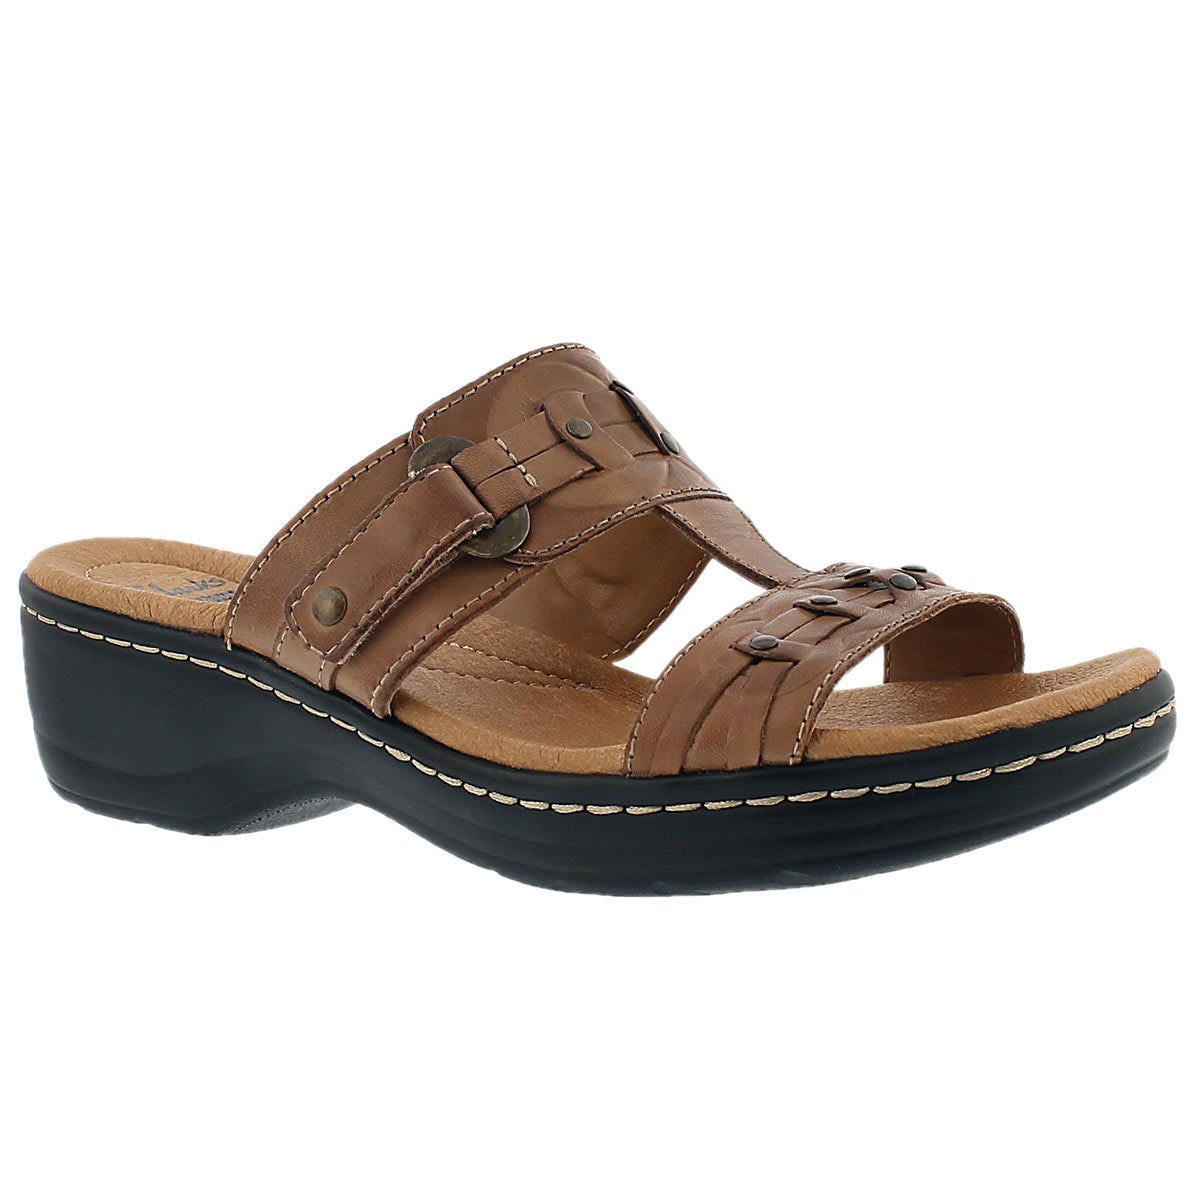 Lds Hayla Young bge casual slide sandal